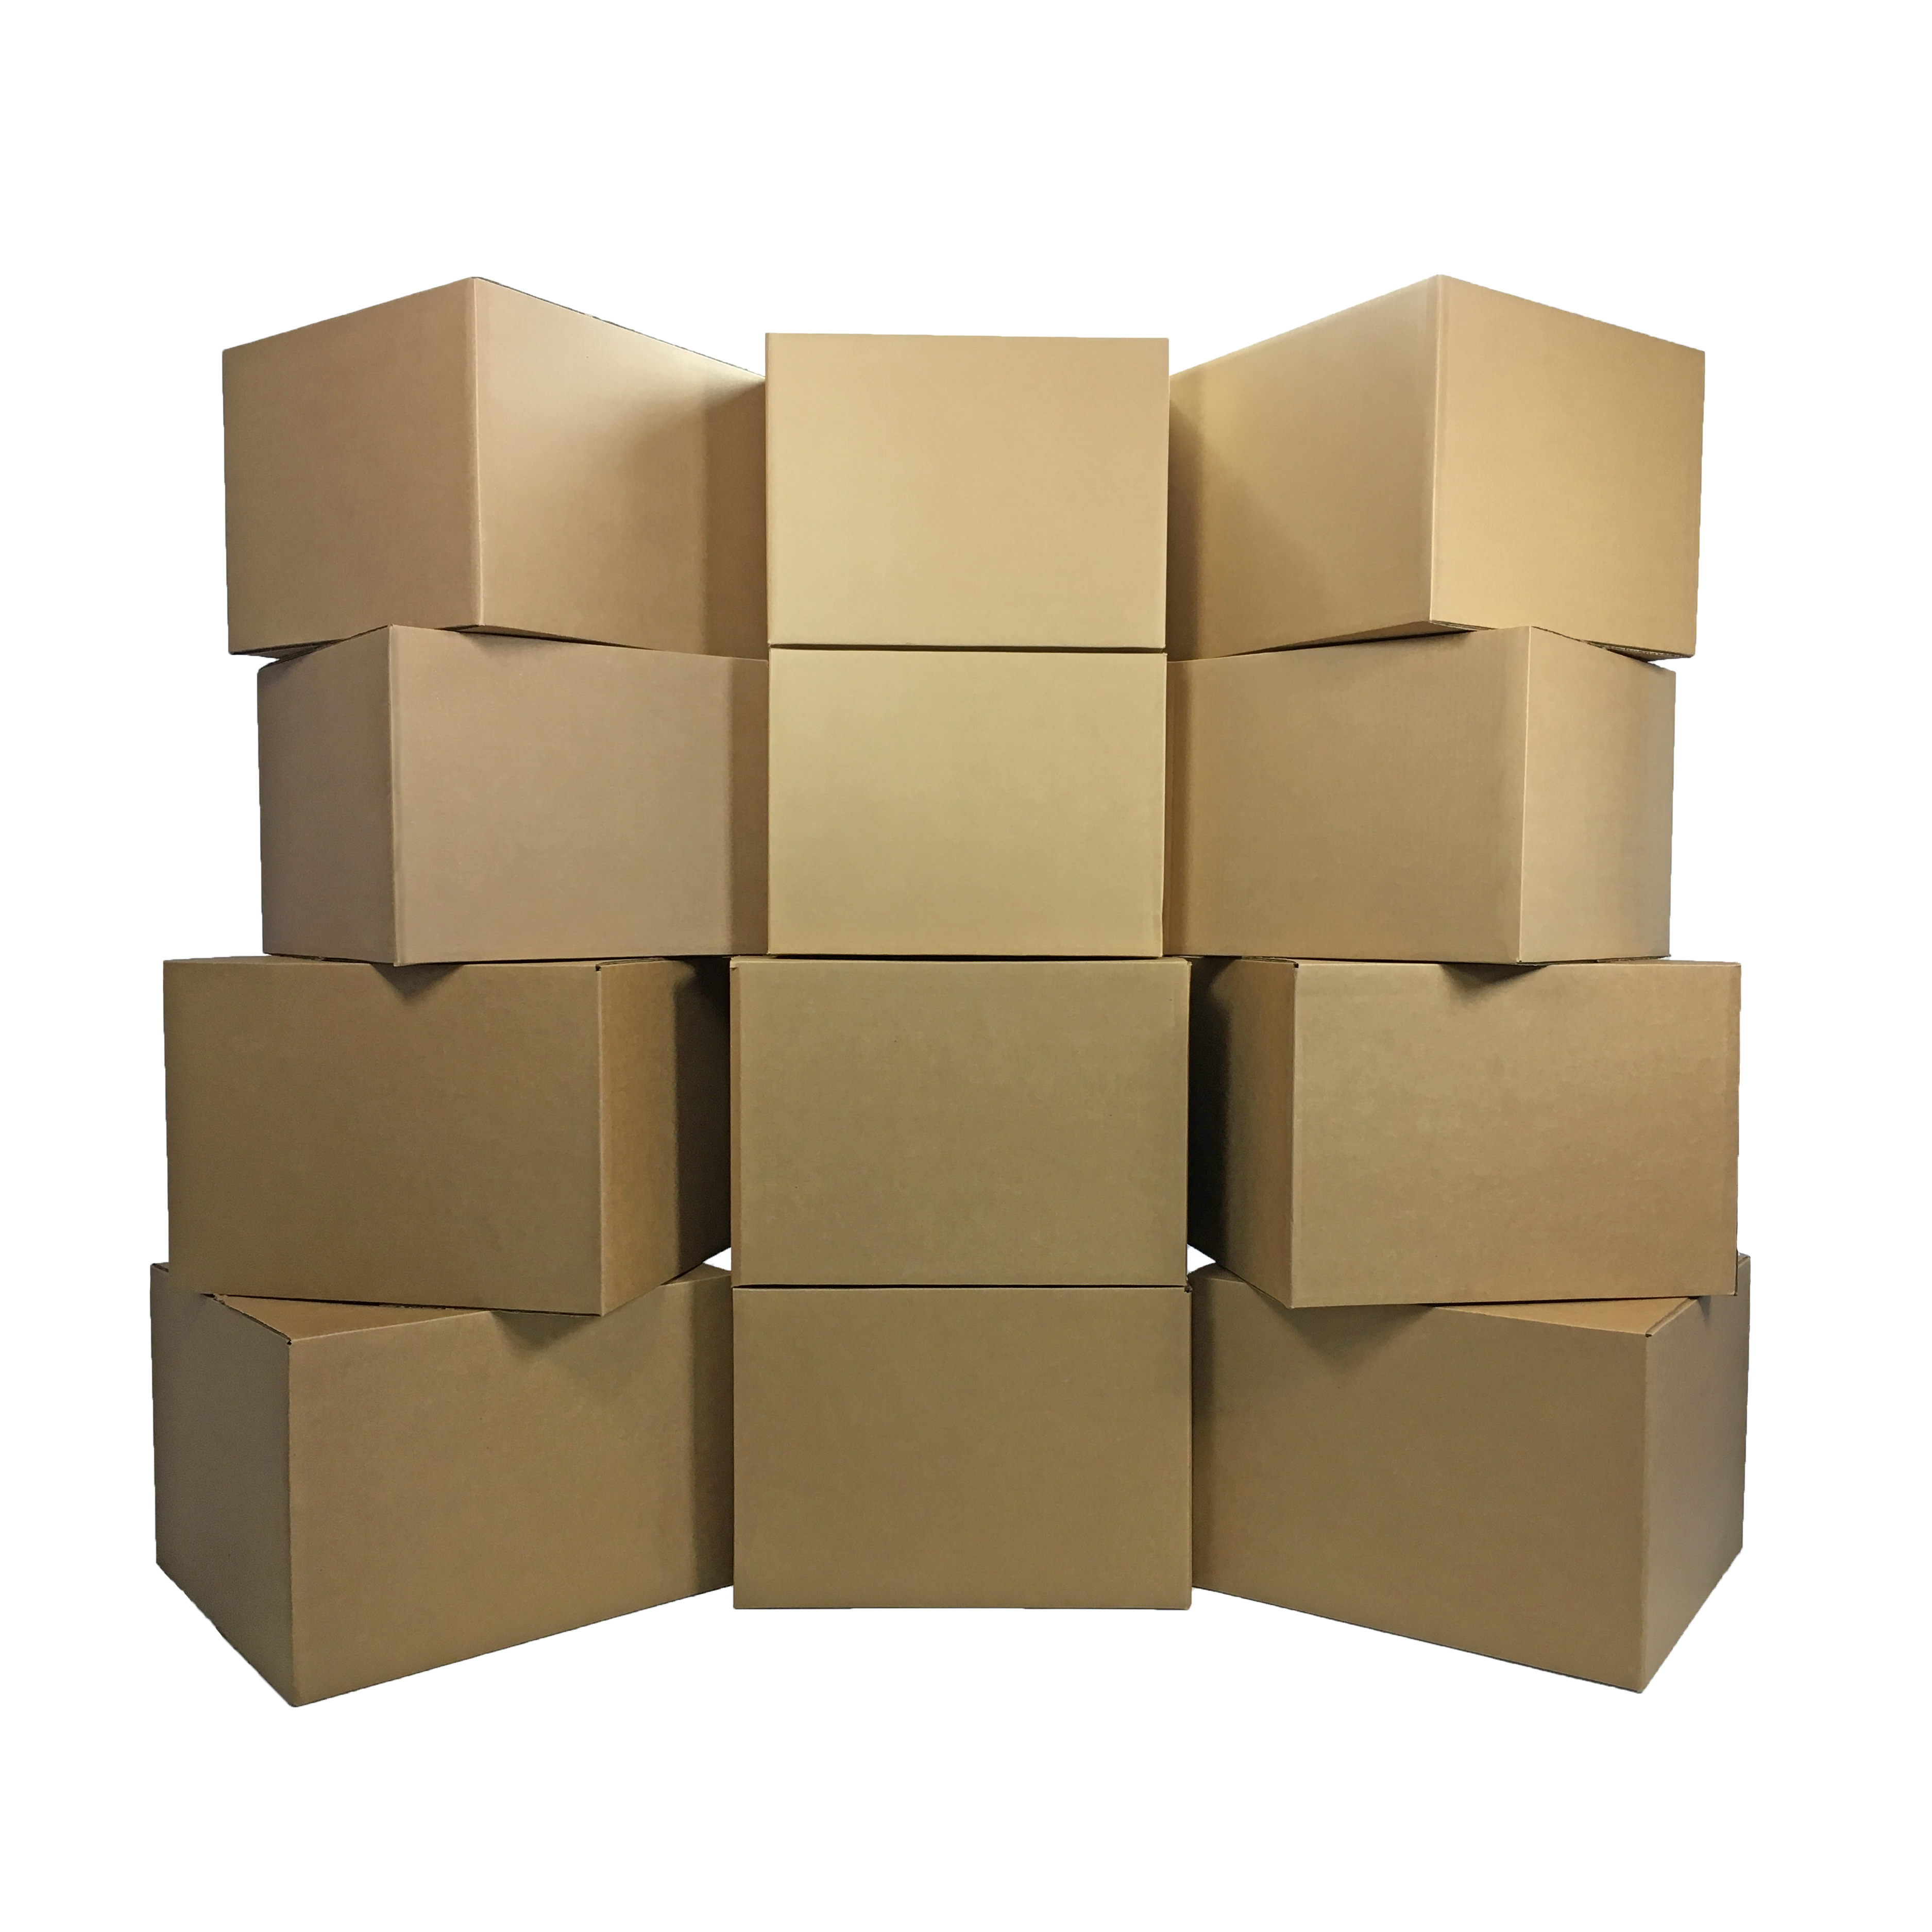 Uboxes Large Moving Boxes, 20x20x15in, 12 Pack, Cardboard Boxes